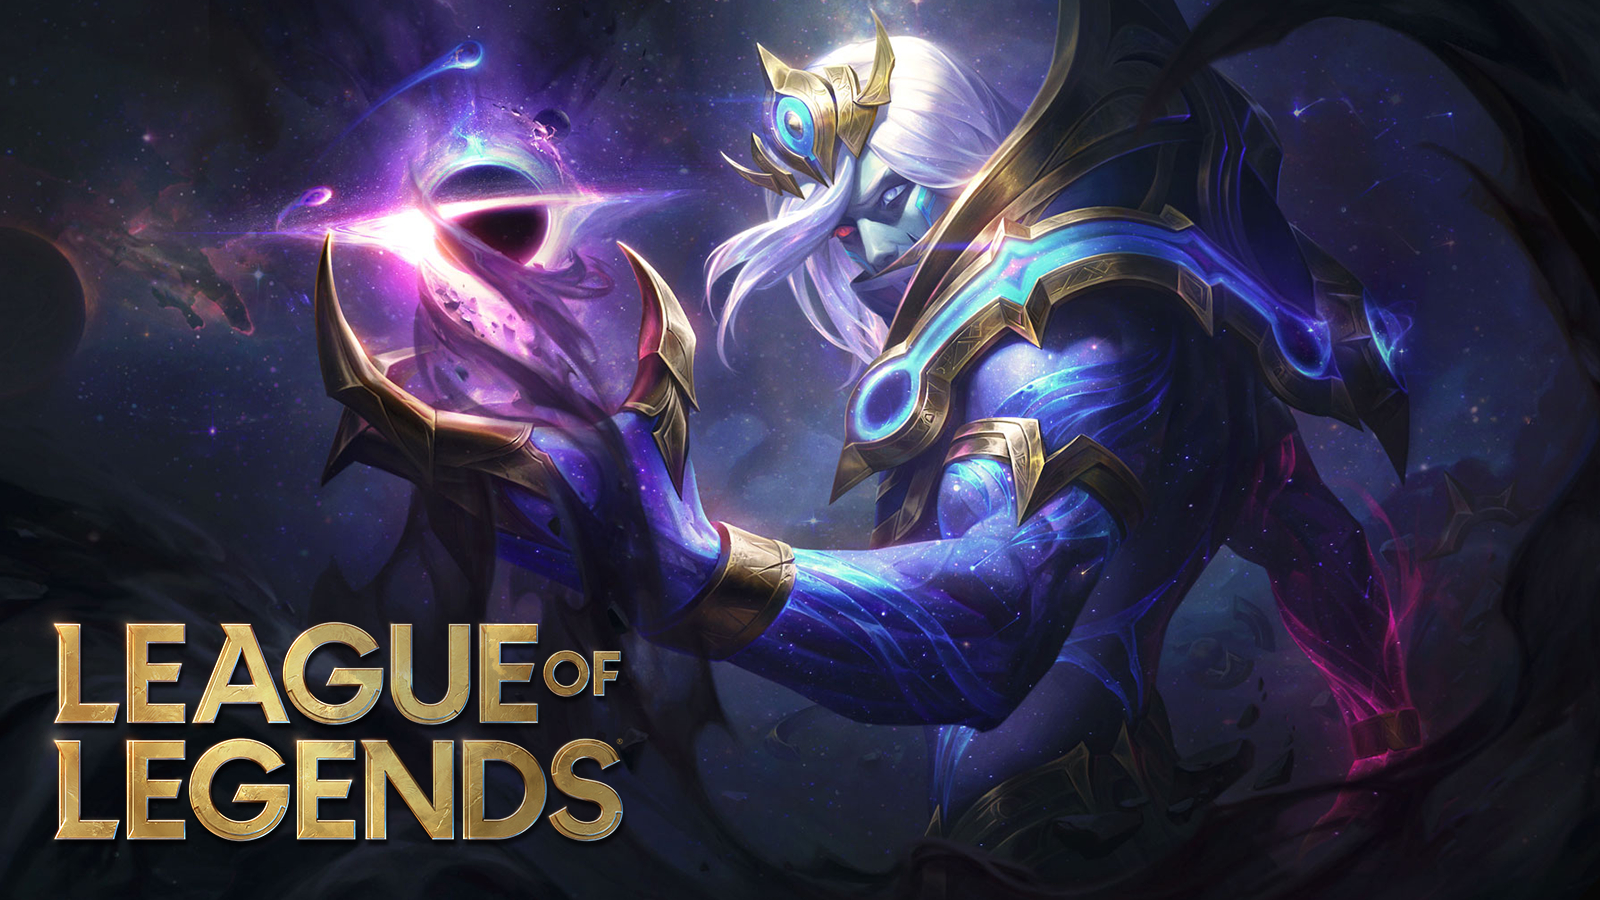 New League patch 10.24 cosmic Vladimir skin stands in front of LoL logo.